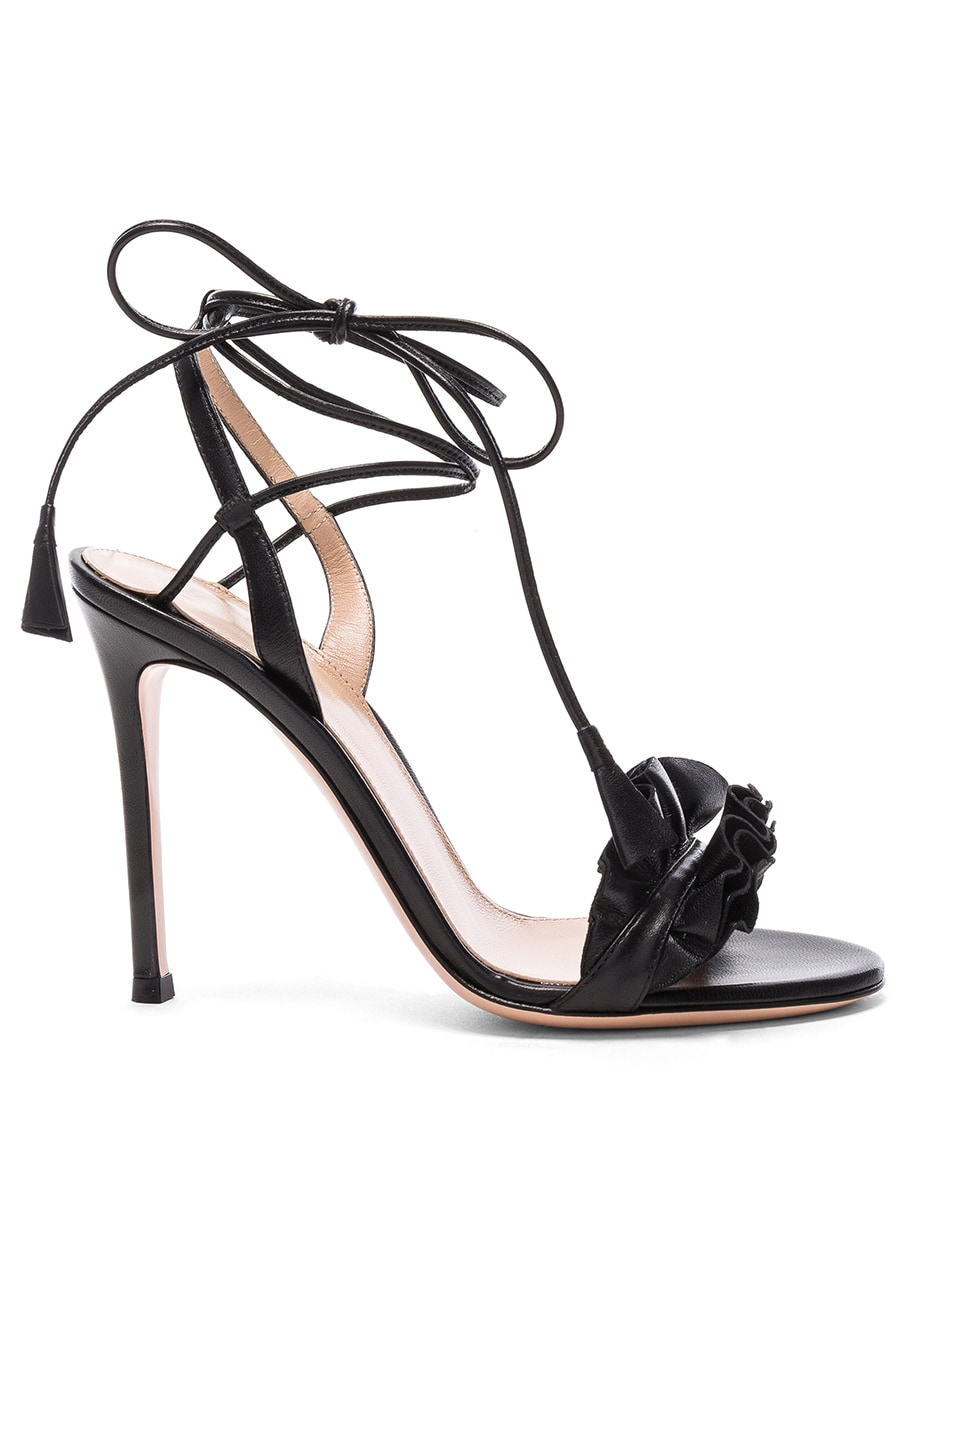 Image 1 of Gianvito Rossi Leather Ruffle Heels in Black